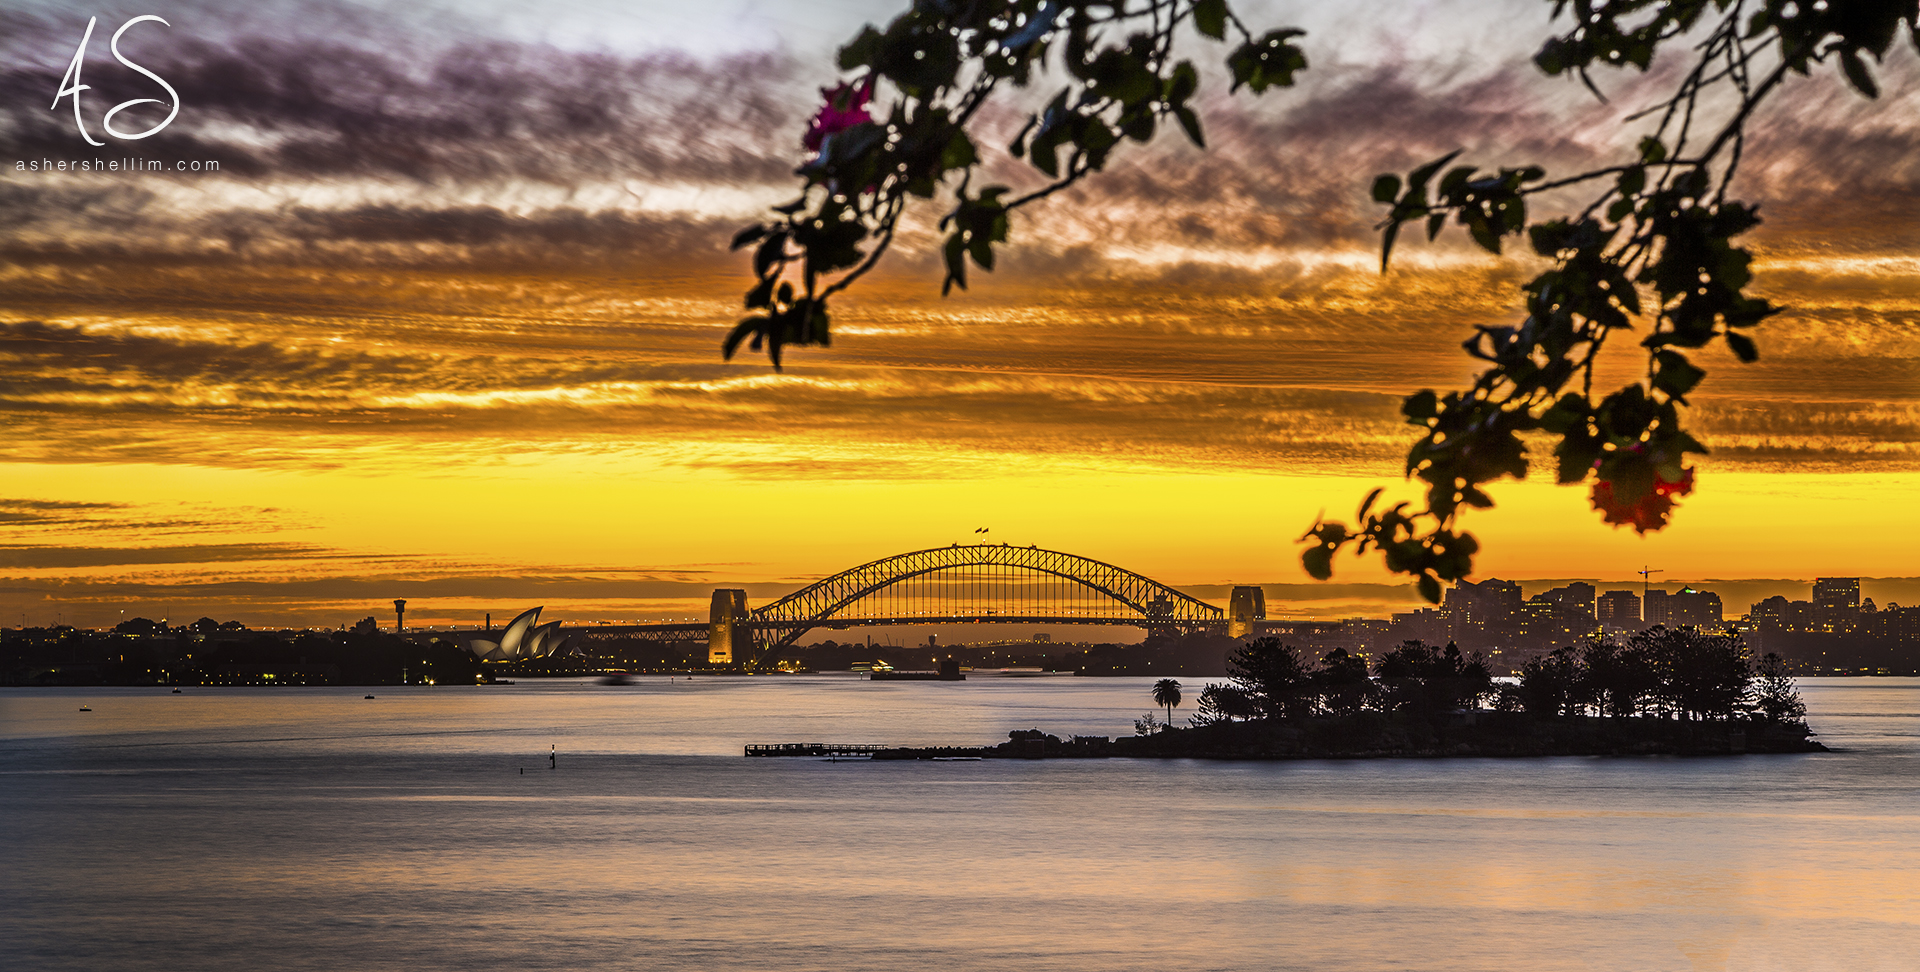 'Still'  Sydney Harbour sitting still following a glorious sunset.